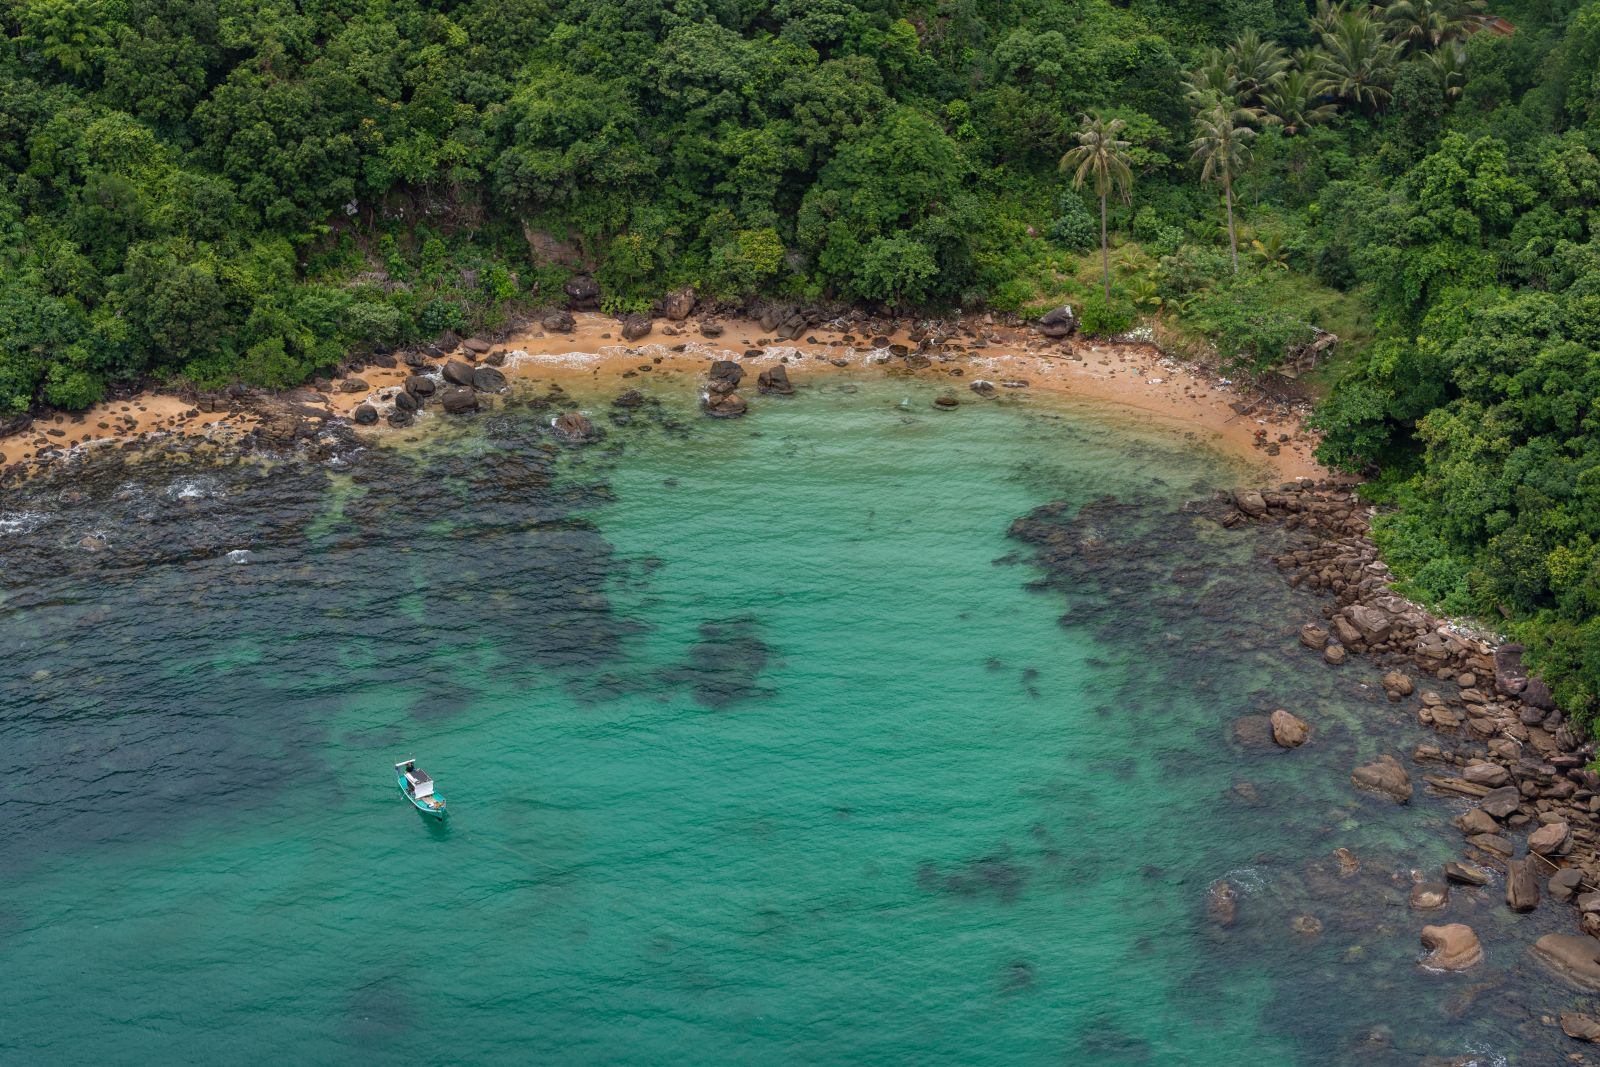 Phu Quoc listed among 15 best islands in the world to retire to